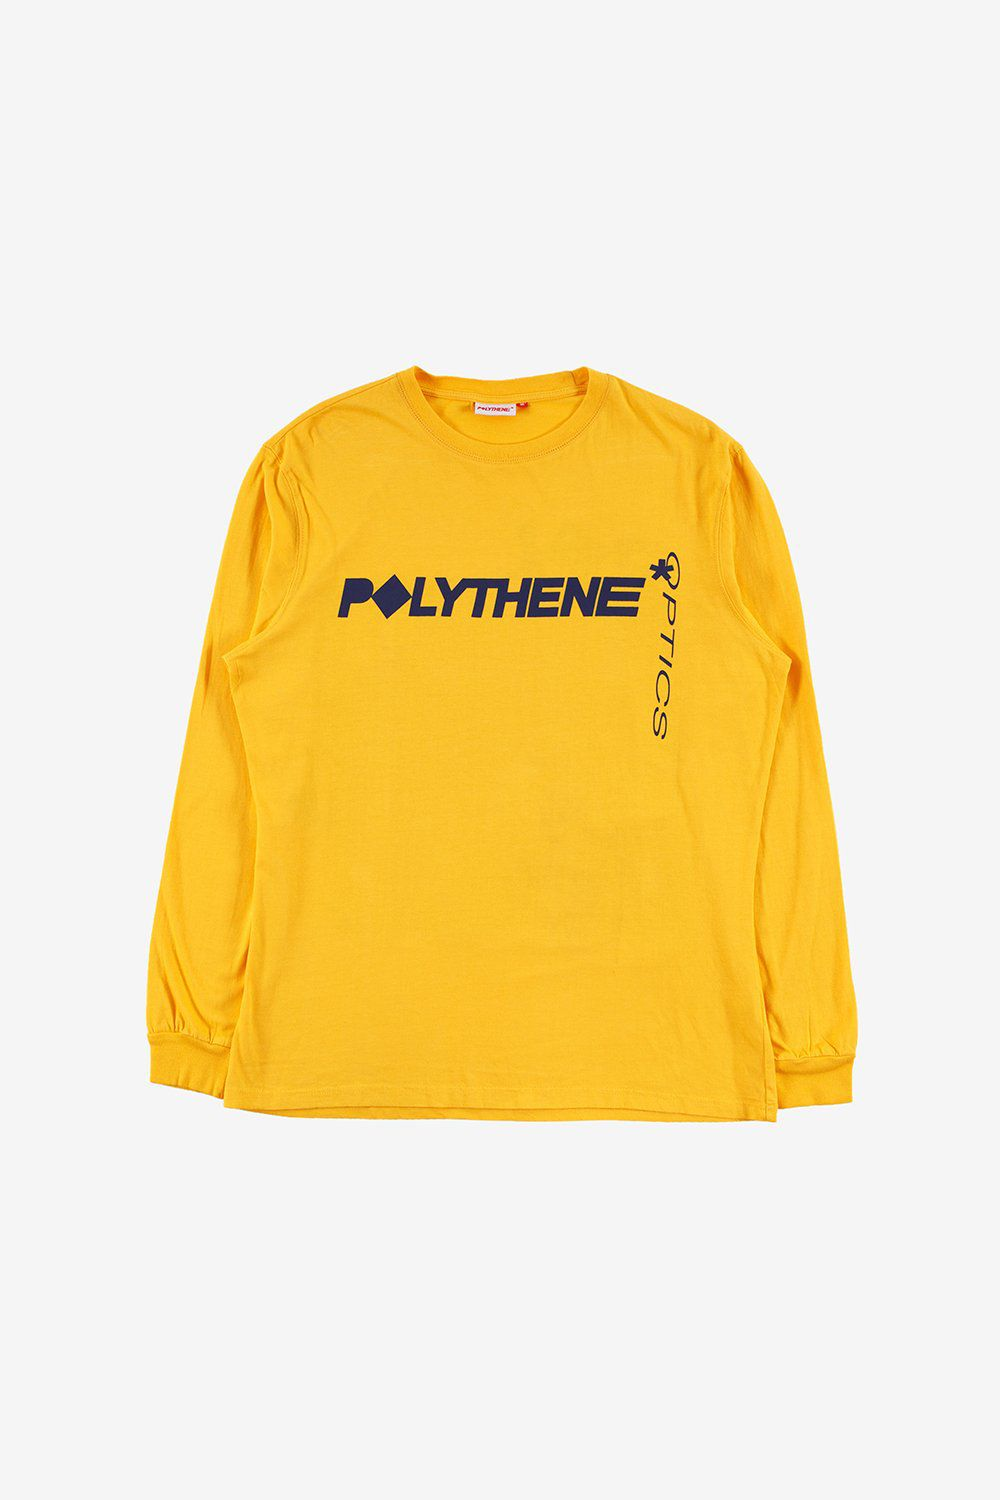 Polythene Optics Apparel Graphical Nails Long Sleeve T-Shirt Yellow